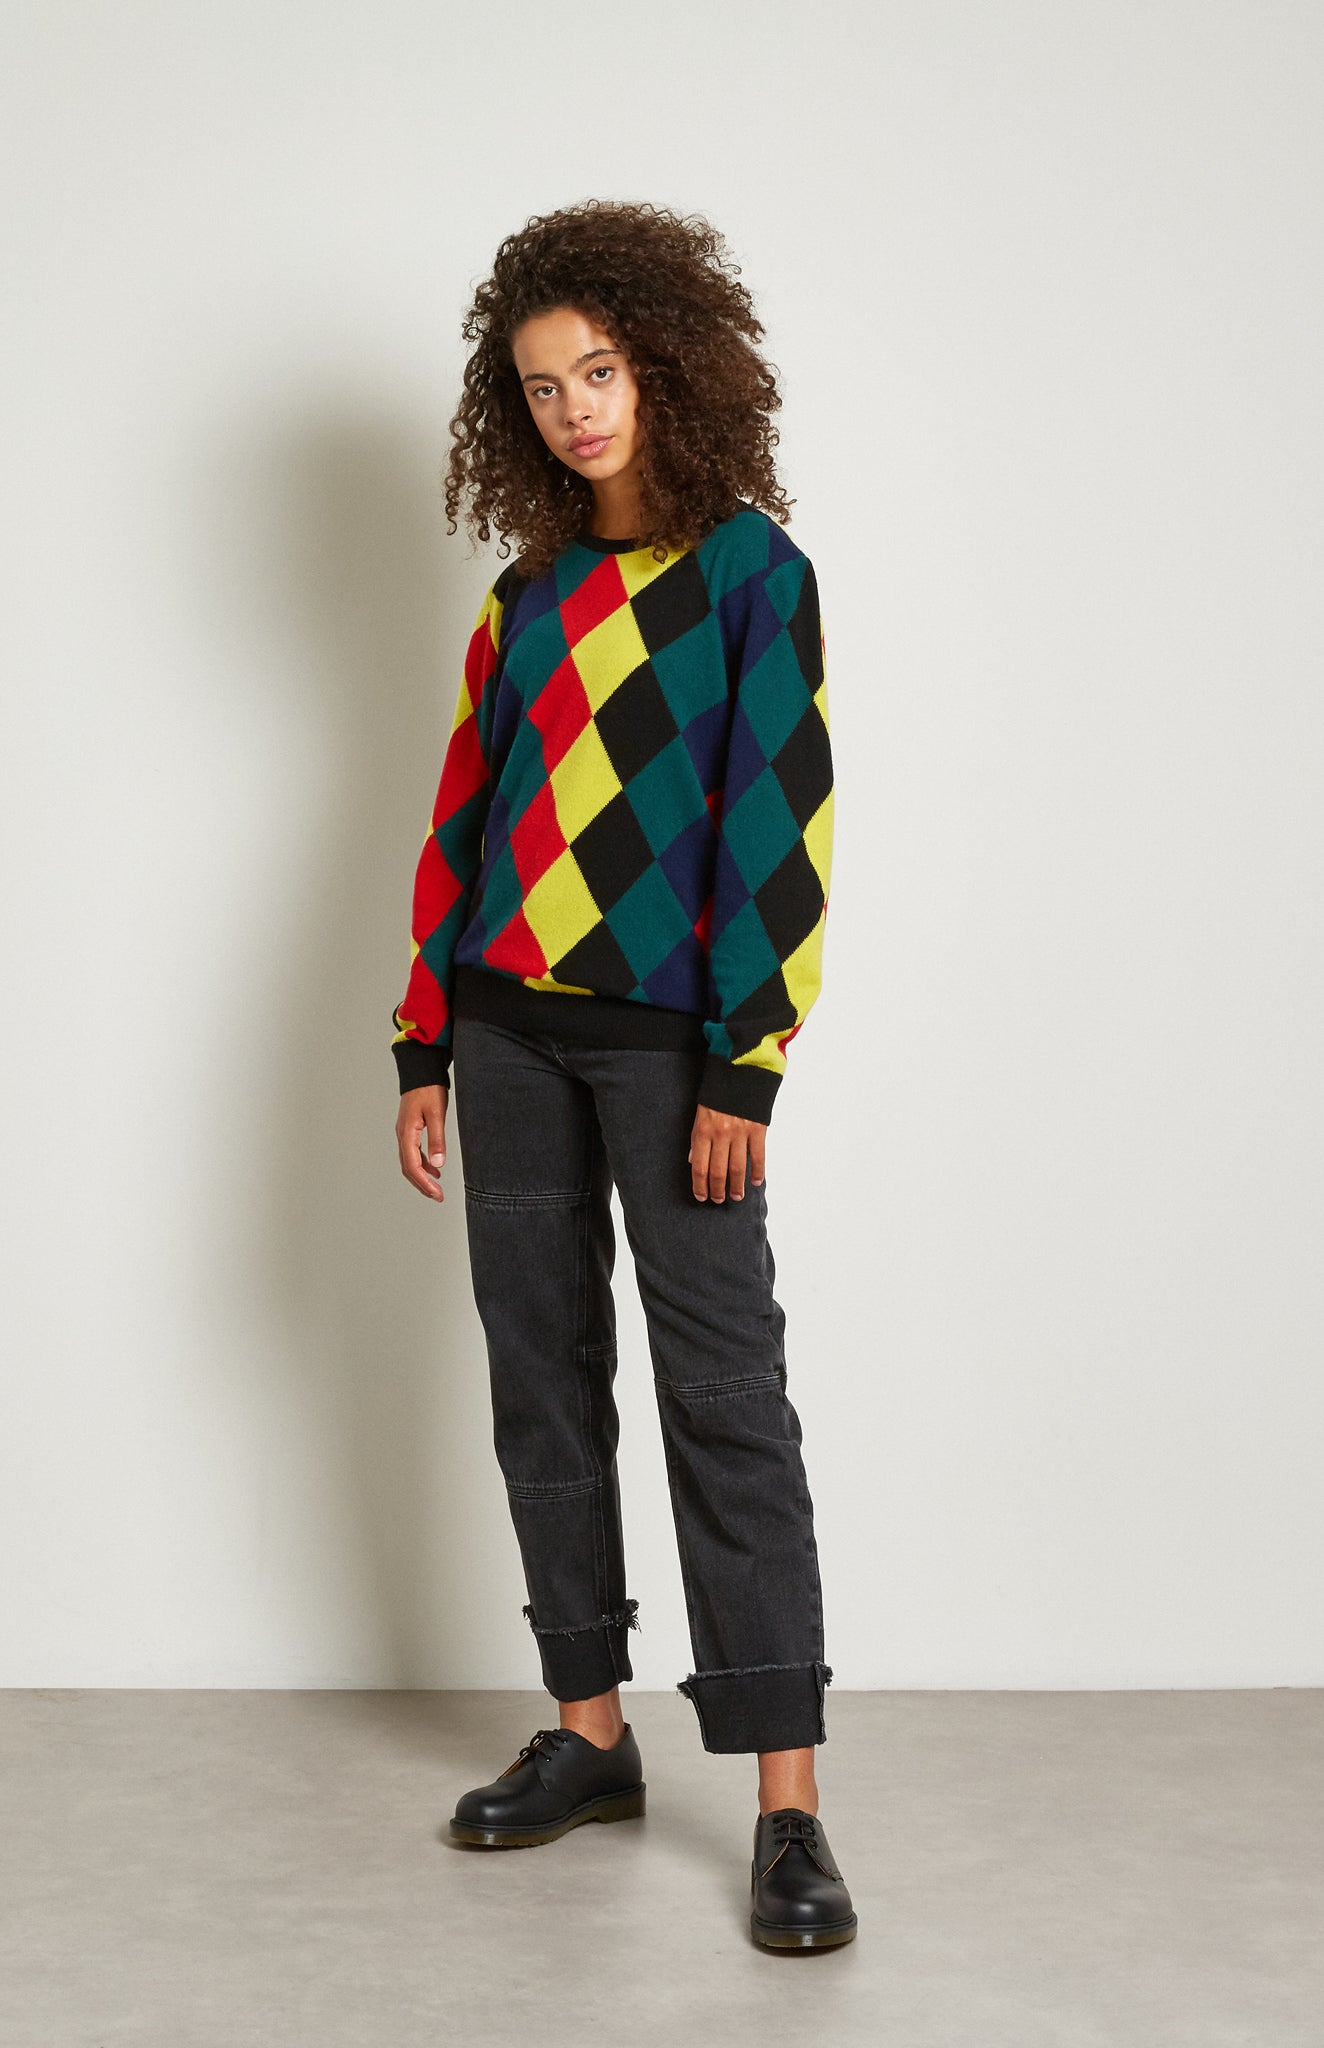 Pringle Reissued Unisex Harlequin Argyle Sweater in multi colours on women's model